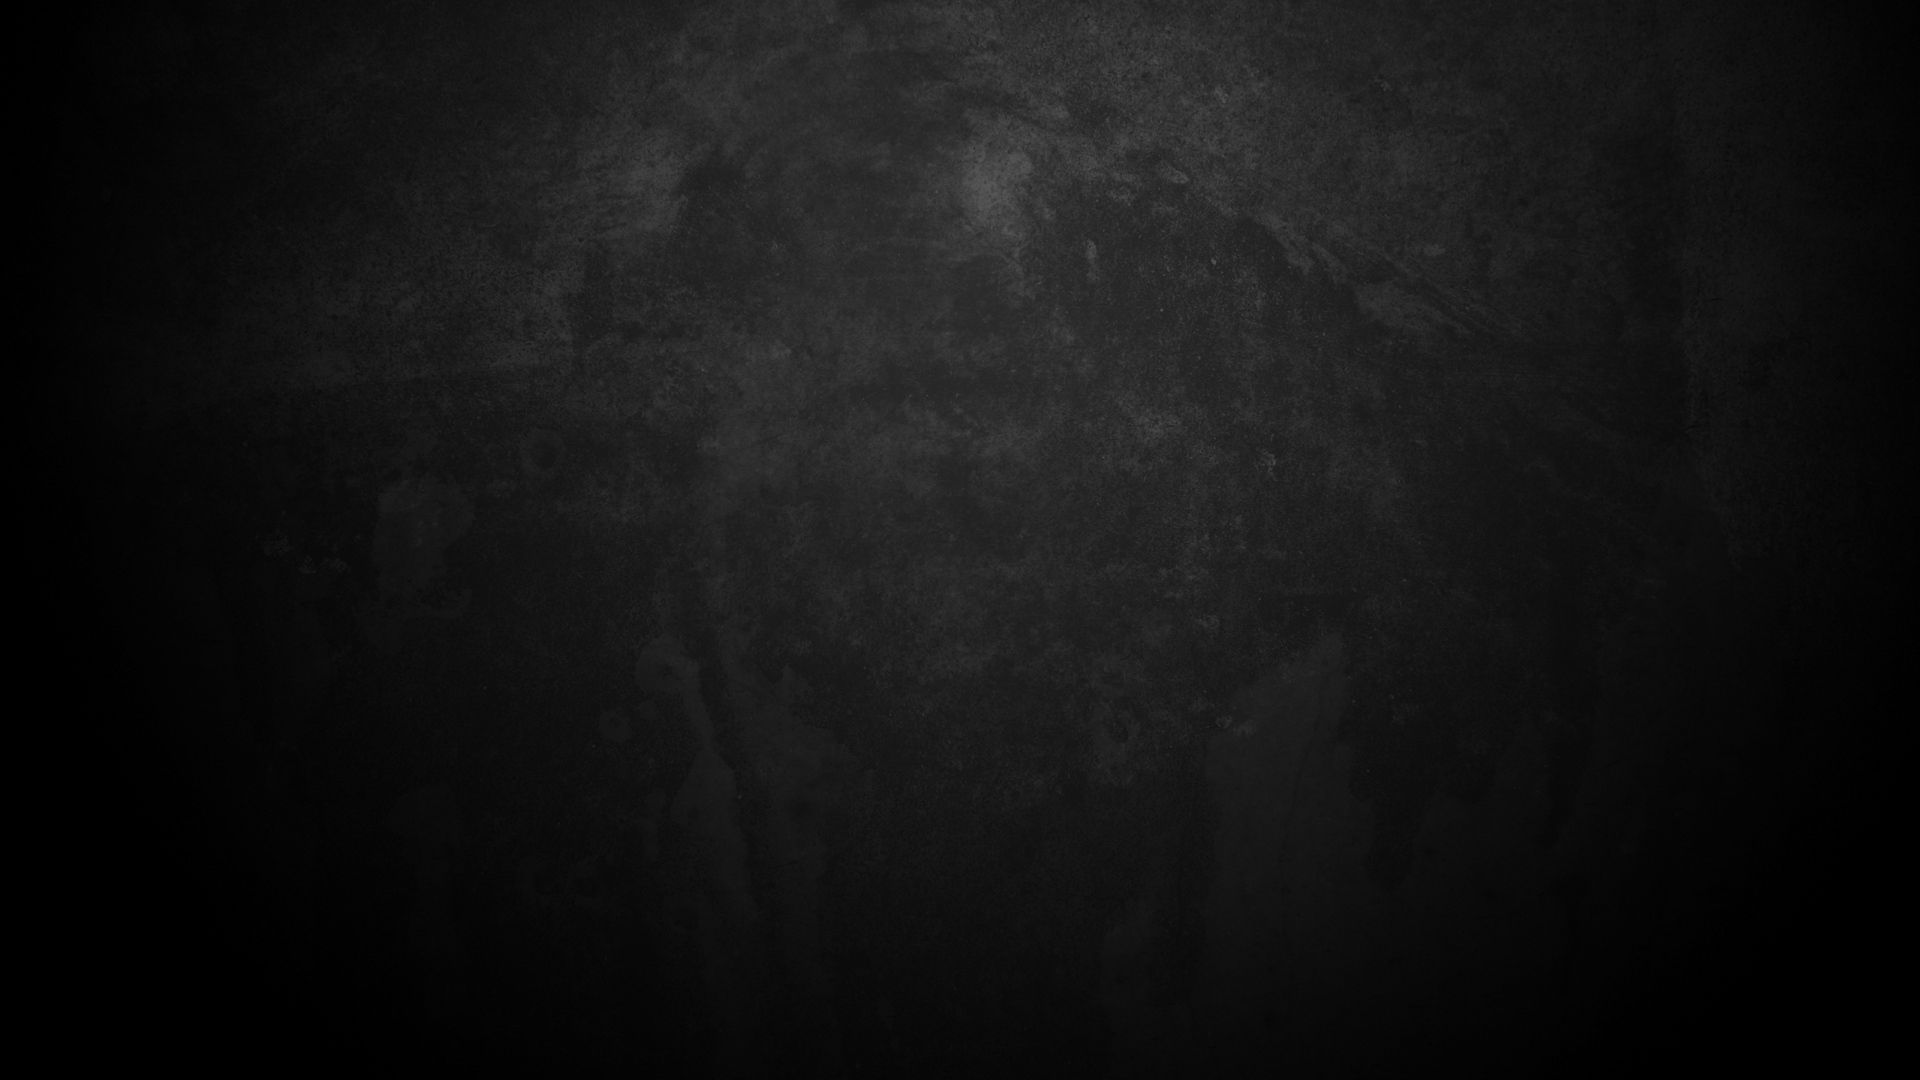 black texture wallpapers 3856 - photo #7